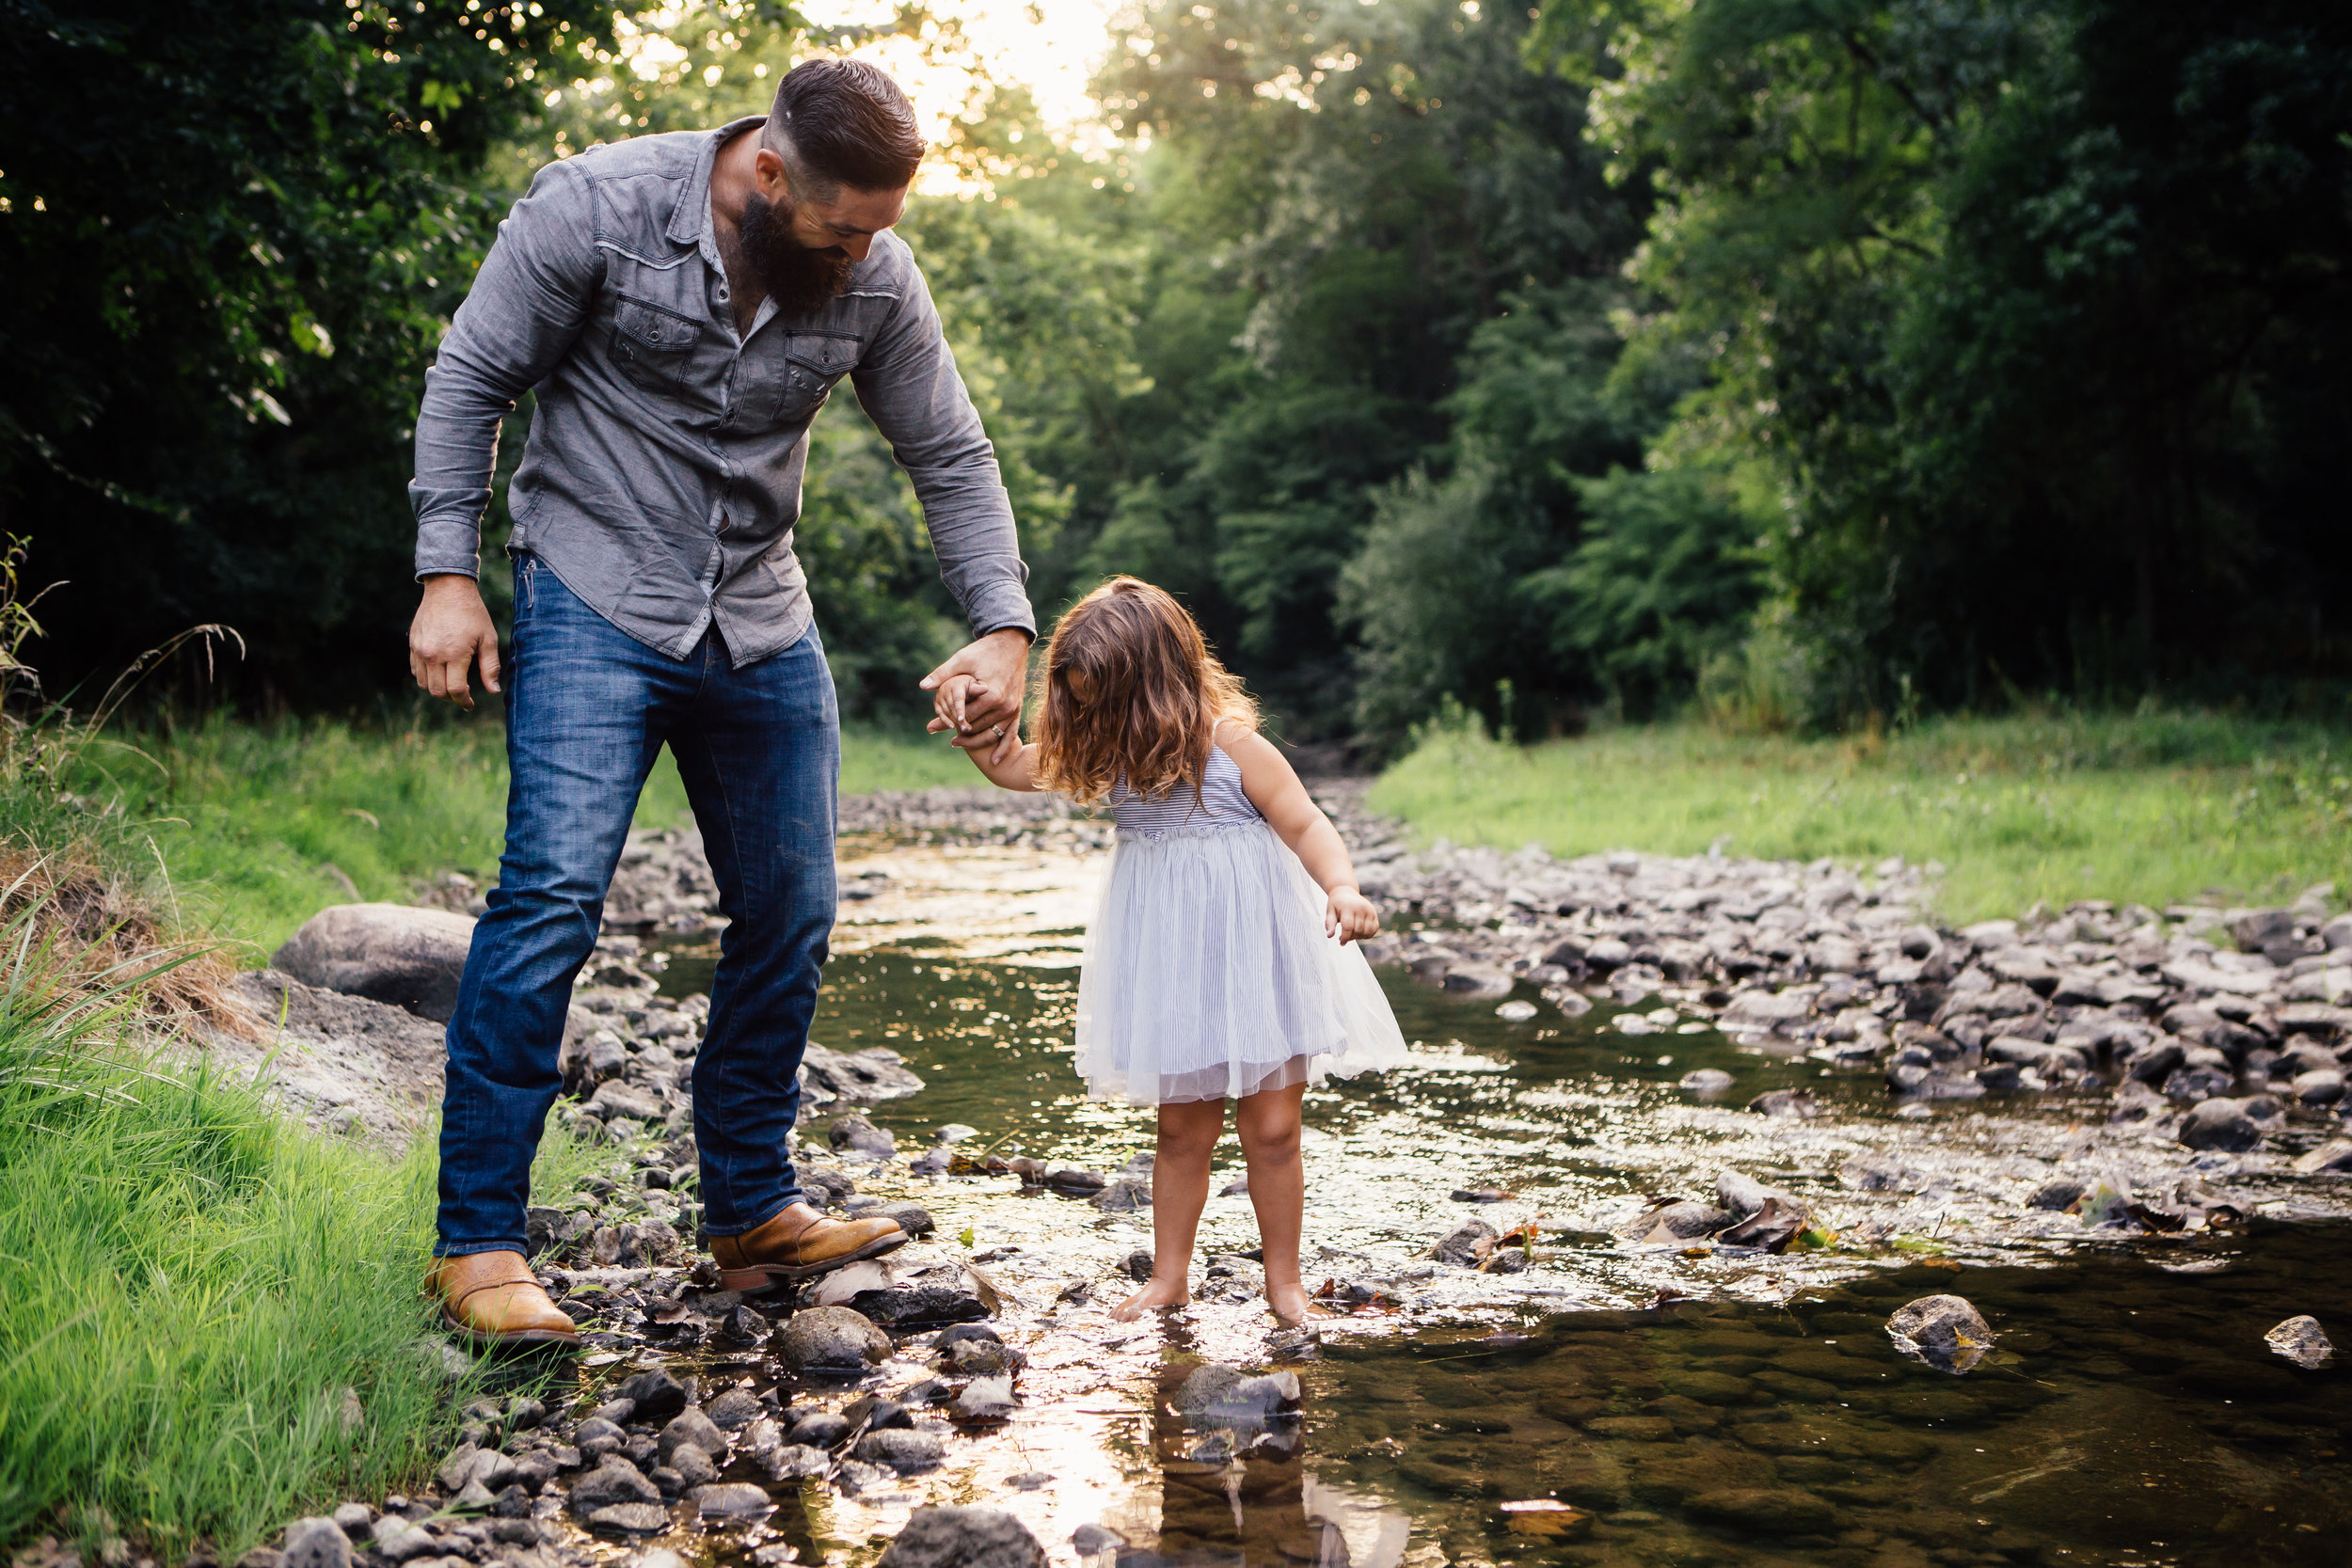 Dad and daughter get close to the creek as they play together during family photos in the summer #tealawardphotography #texassummerphotographer #pictureseason #amarillophotographer #amarillofamilyphotographer #emotionalphotography #engagementphotography #couplesphotography #pickingaseasonforphotosessions #whatsimportant #everythingtogether #pickingcolorsforphotos #summerphotos #greeneryinphotos